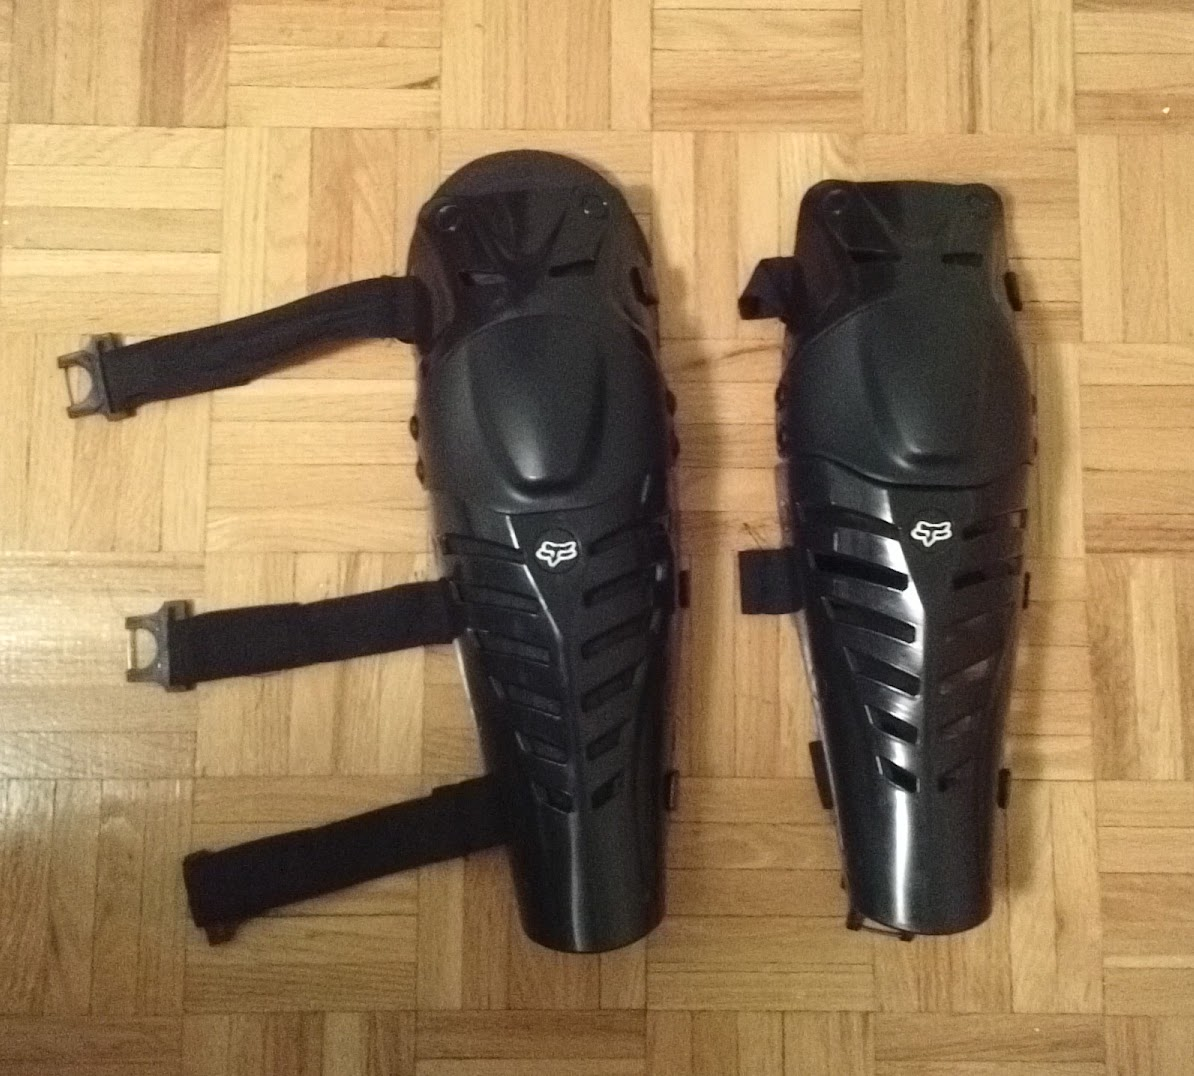 Picture of Upgraded Knee/Shin Pads Under $8 (Total Cost of Knee Pads + Upgrade Is $43.00 CDN)